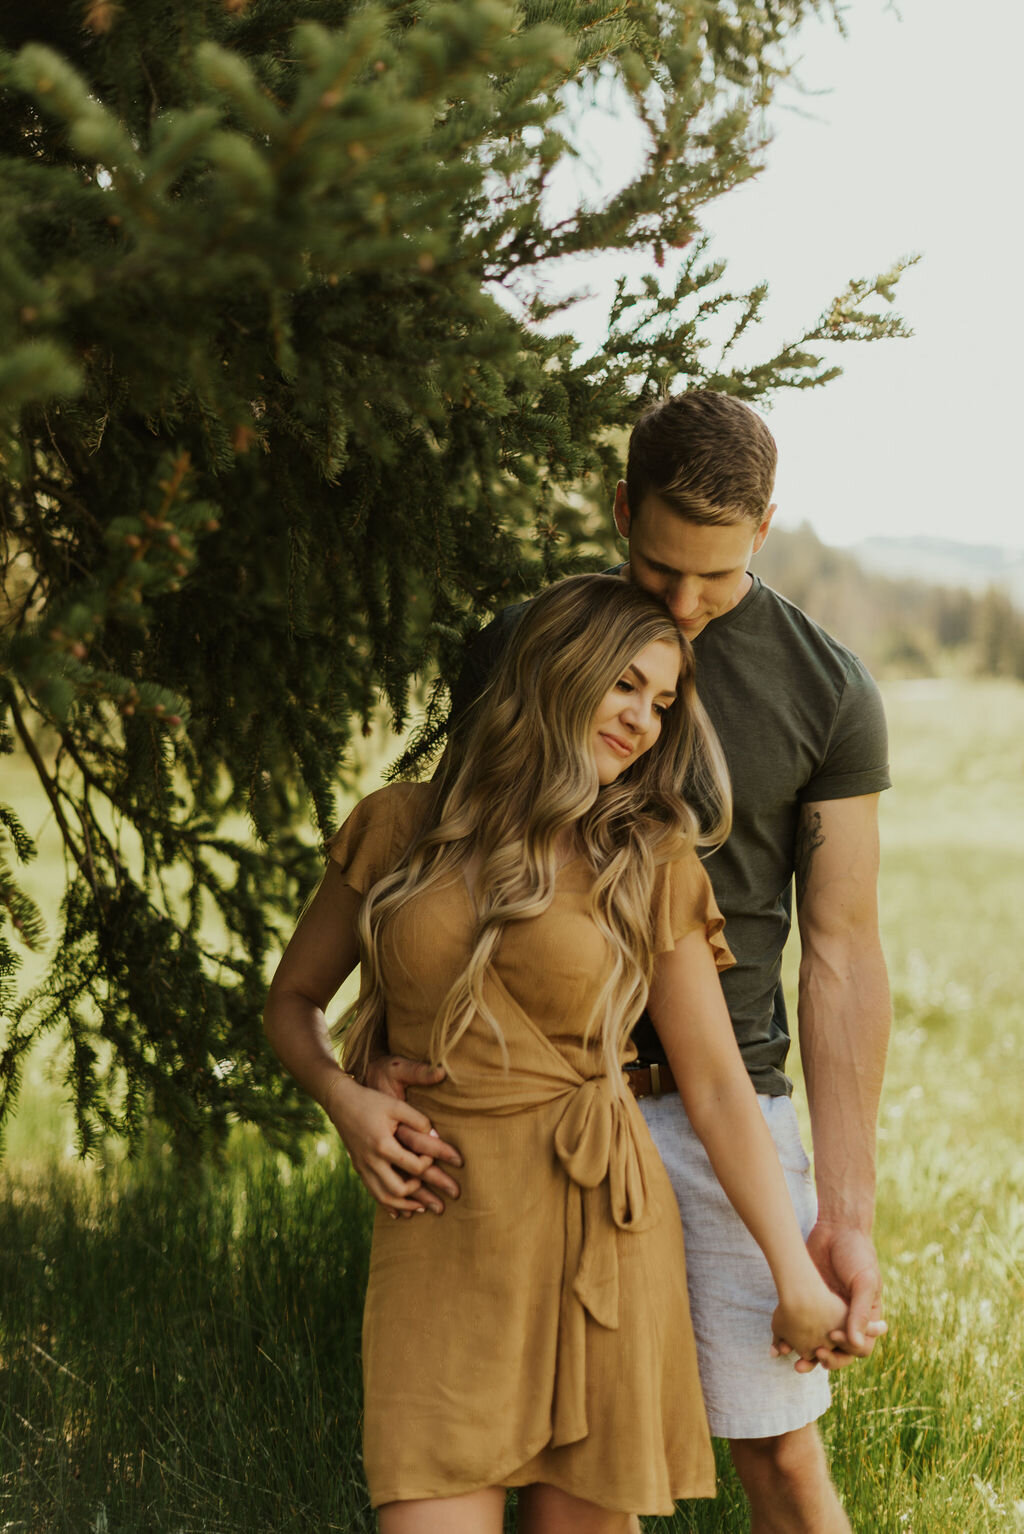 mountain-engagement-session-provo-utah-kyle-and-taylor-50.jpg